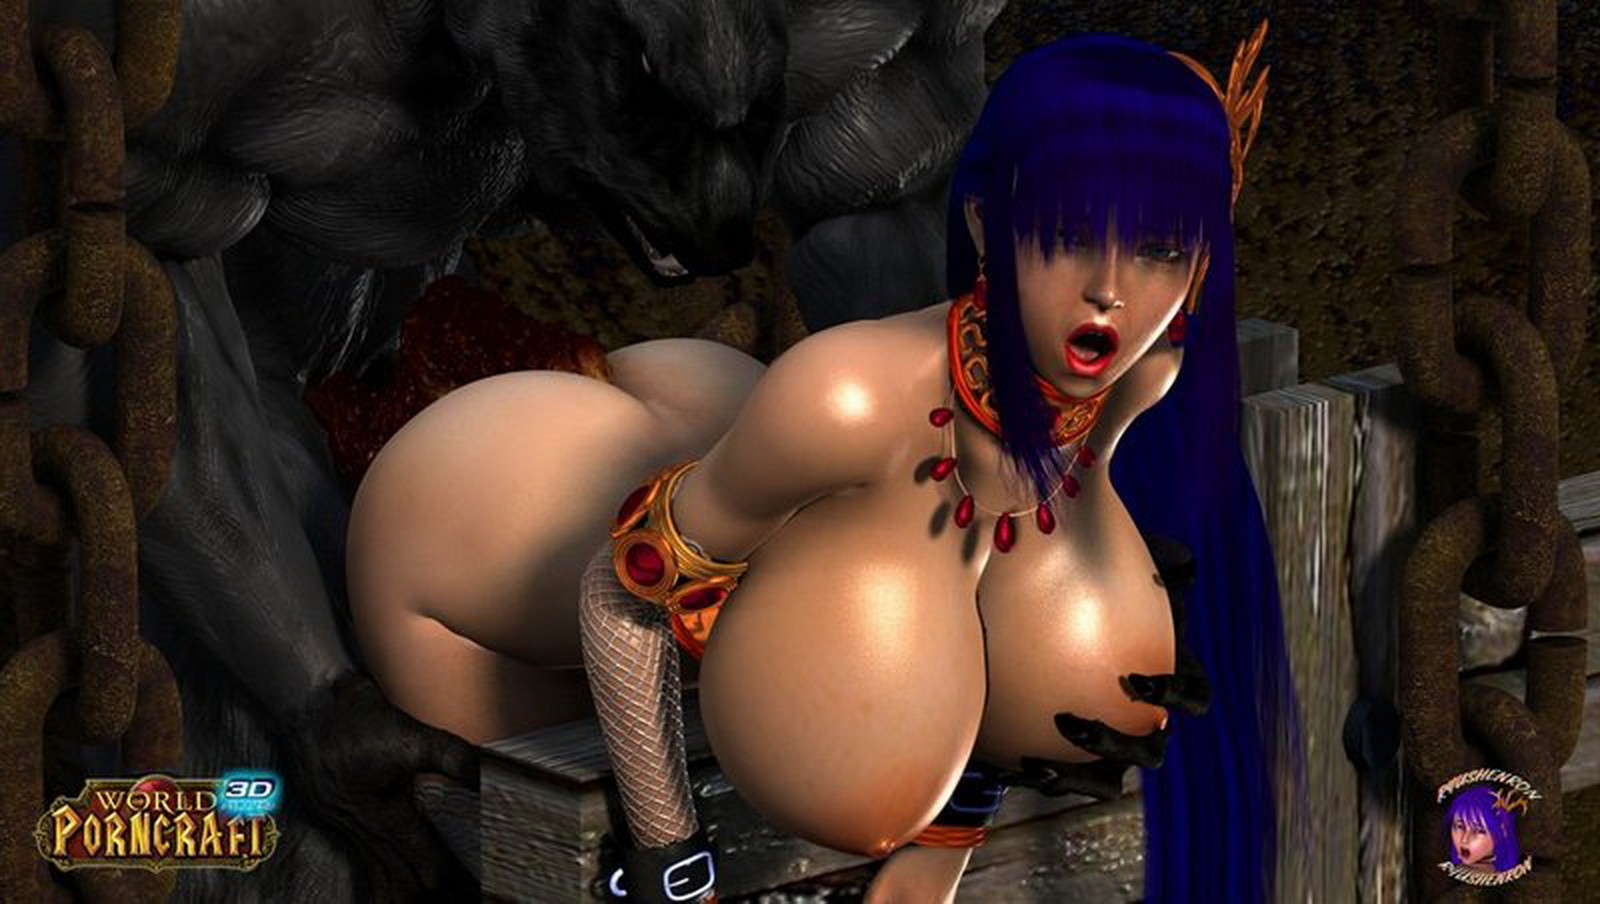 3d porn warrior girl porno picture